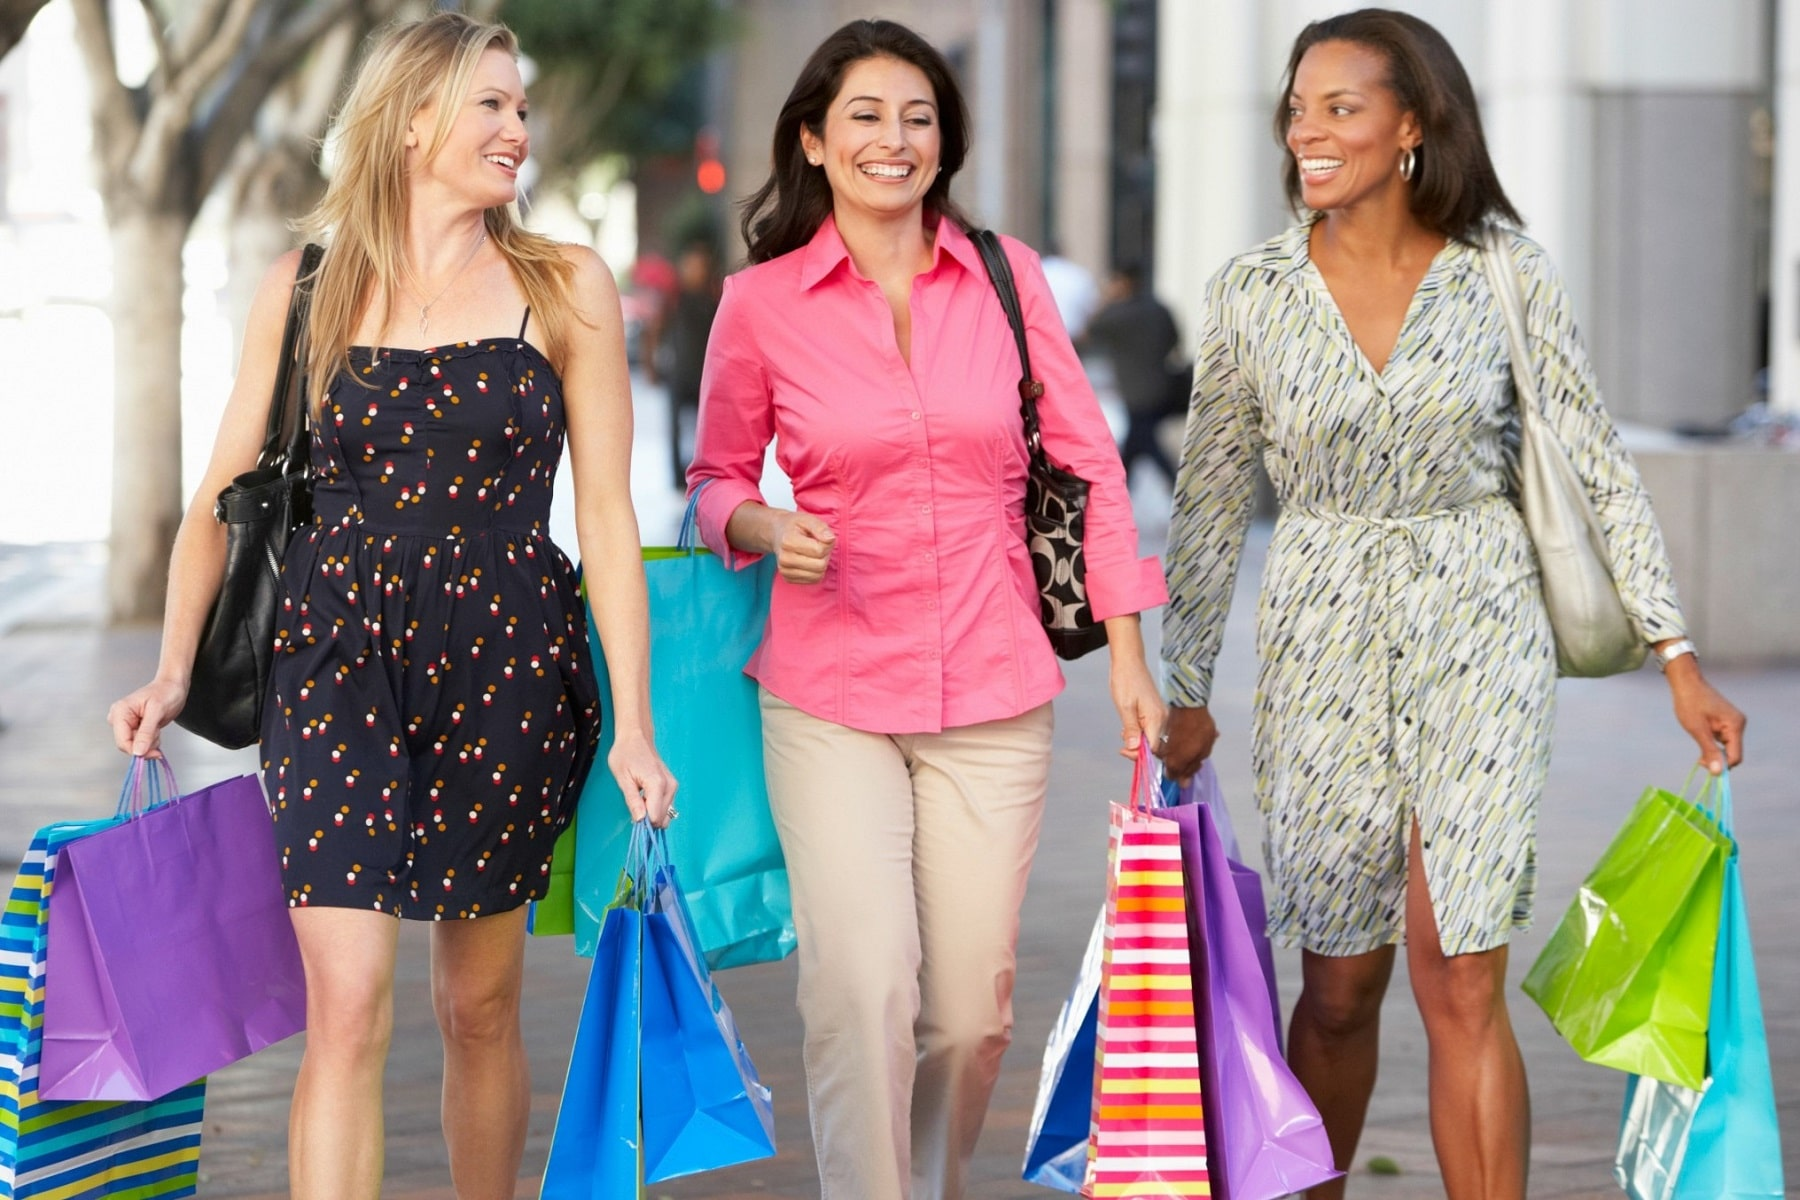 Three women holding shopping bags in Midtown Atlanta